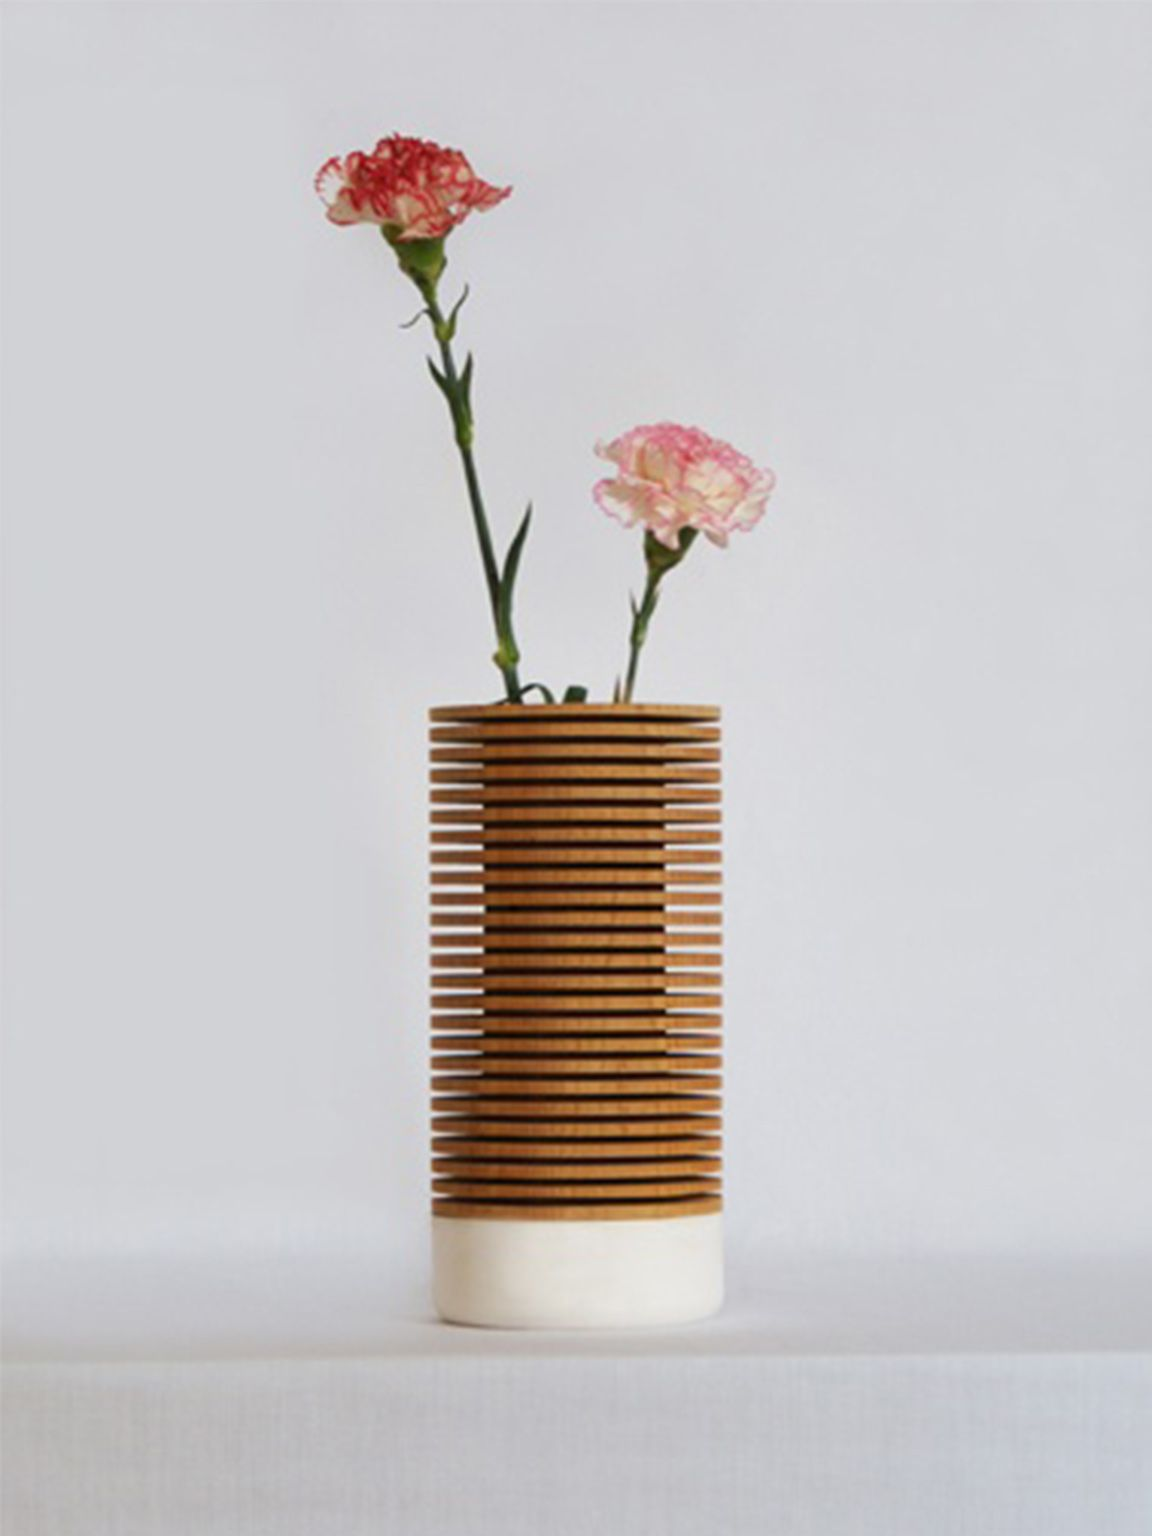 Mingshuo zhang industrial design flowers plants for Appartamento design industriale